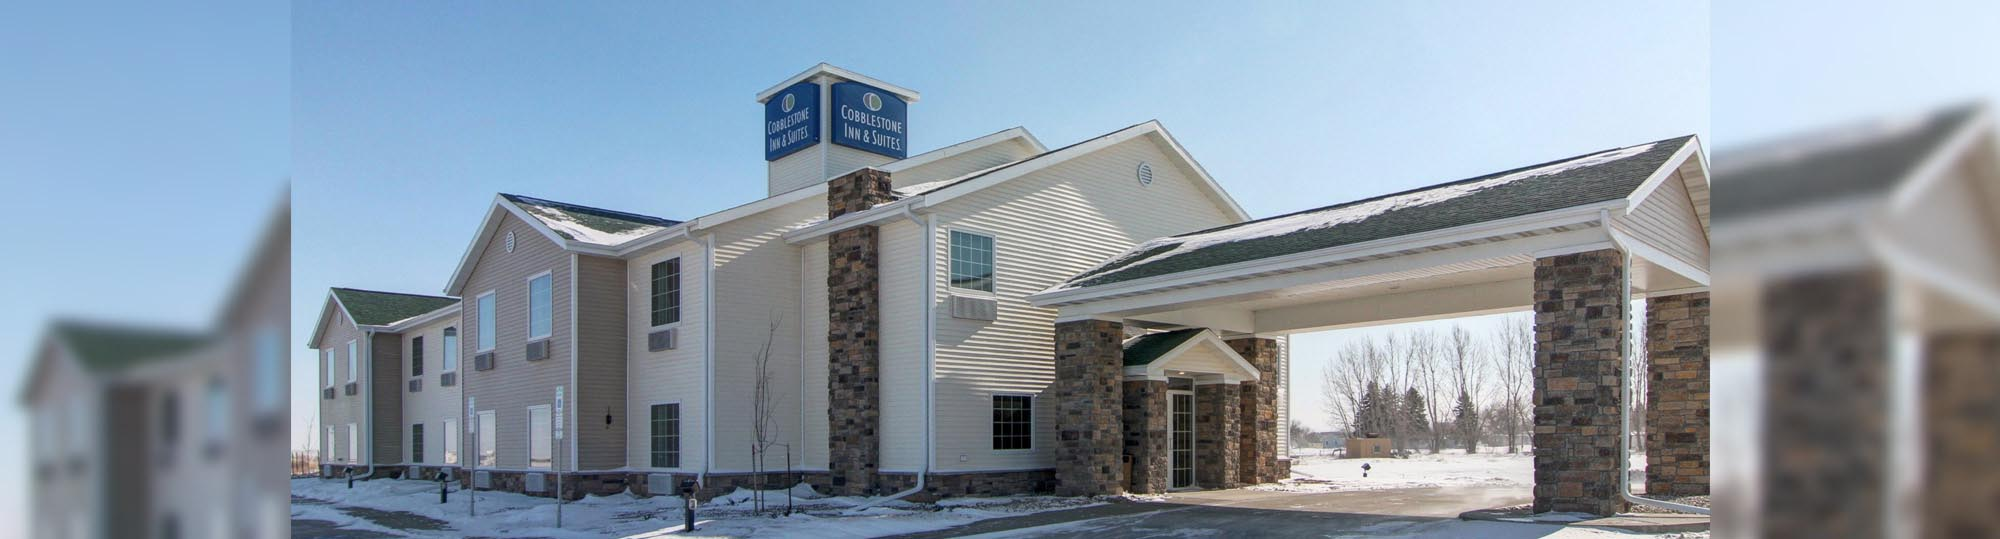 Cobblestone Inn and Suites Steele